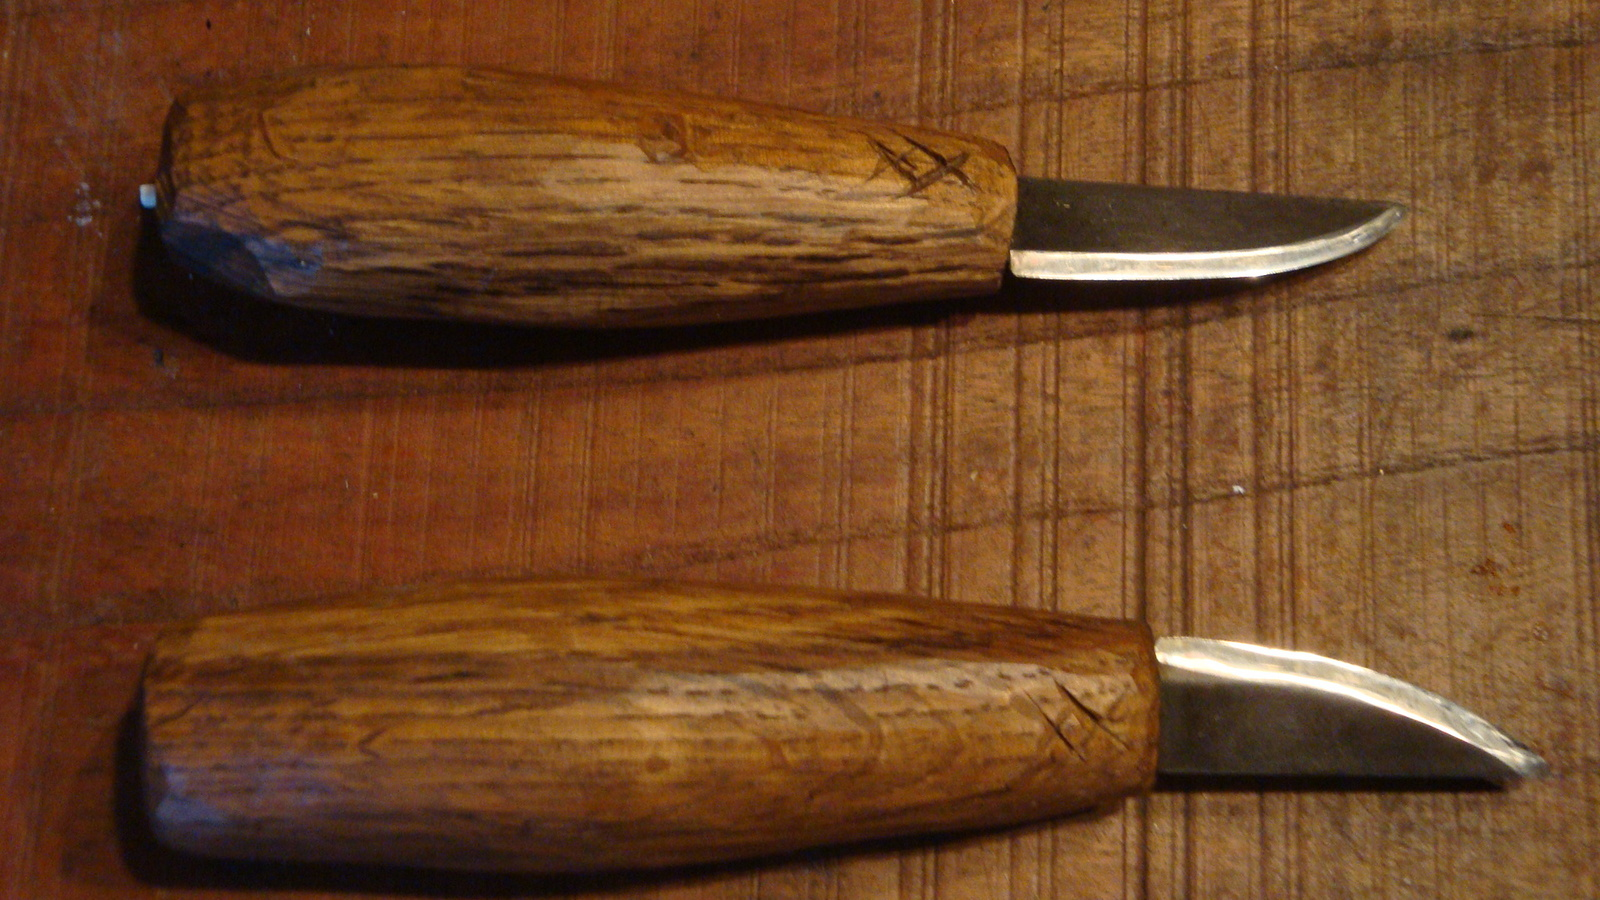 20101120_finish_work_of_knife_cas_3